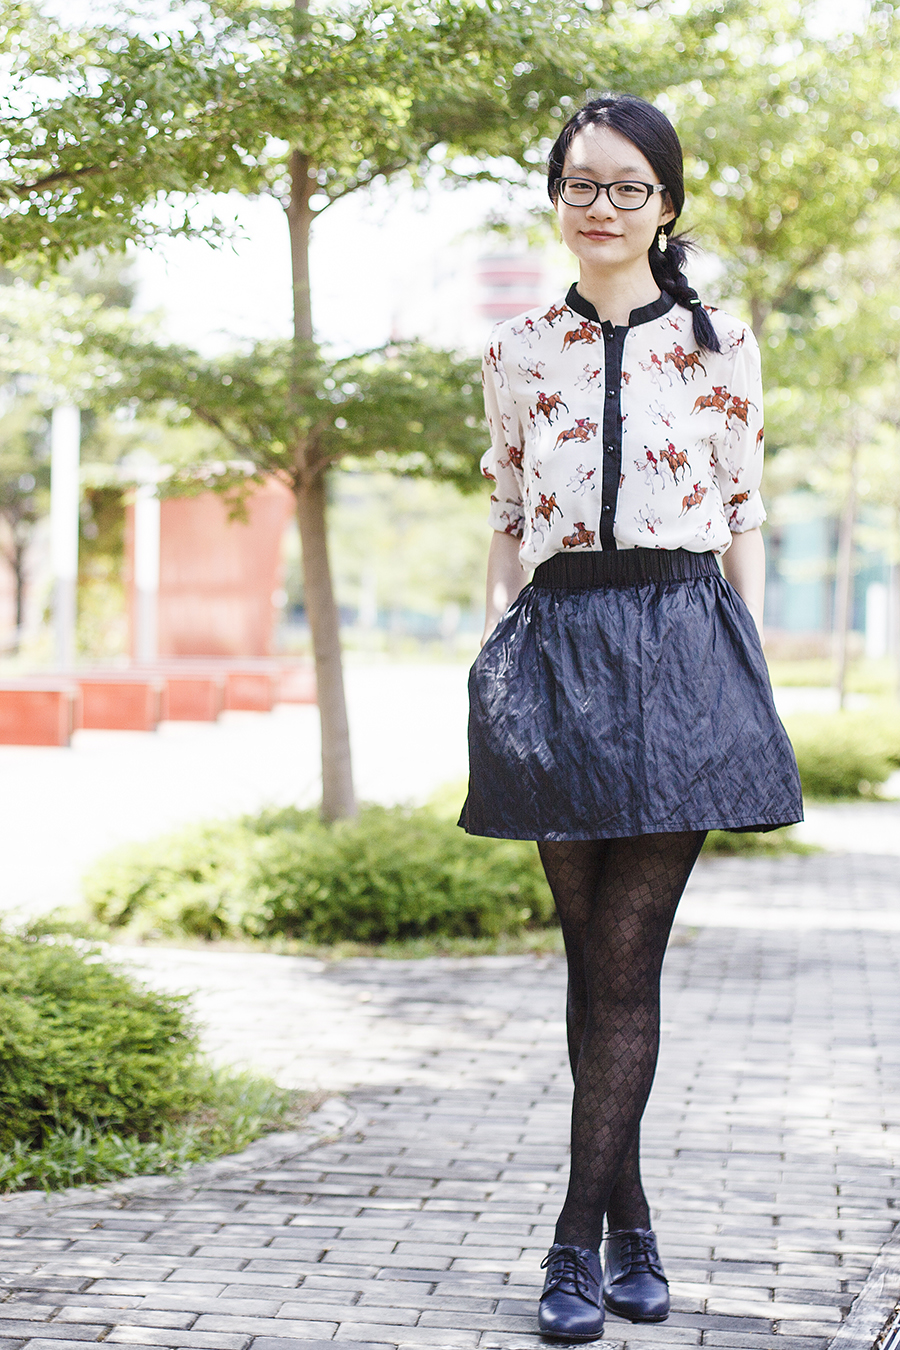 YRBFashion horse print chiffon blouse via Chictopia Connect, M)phosis black metallic skirt, black pattern sheer tights, navy oxford heels from Taobao, Gap black frame glasses.